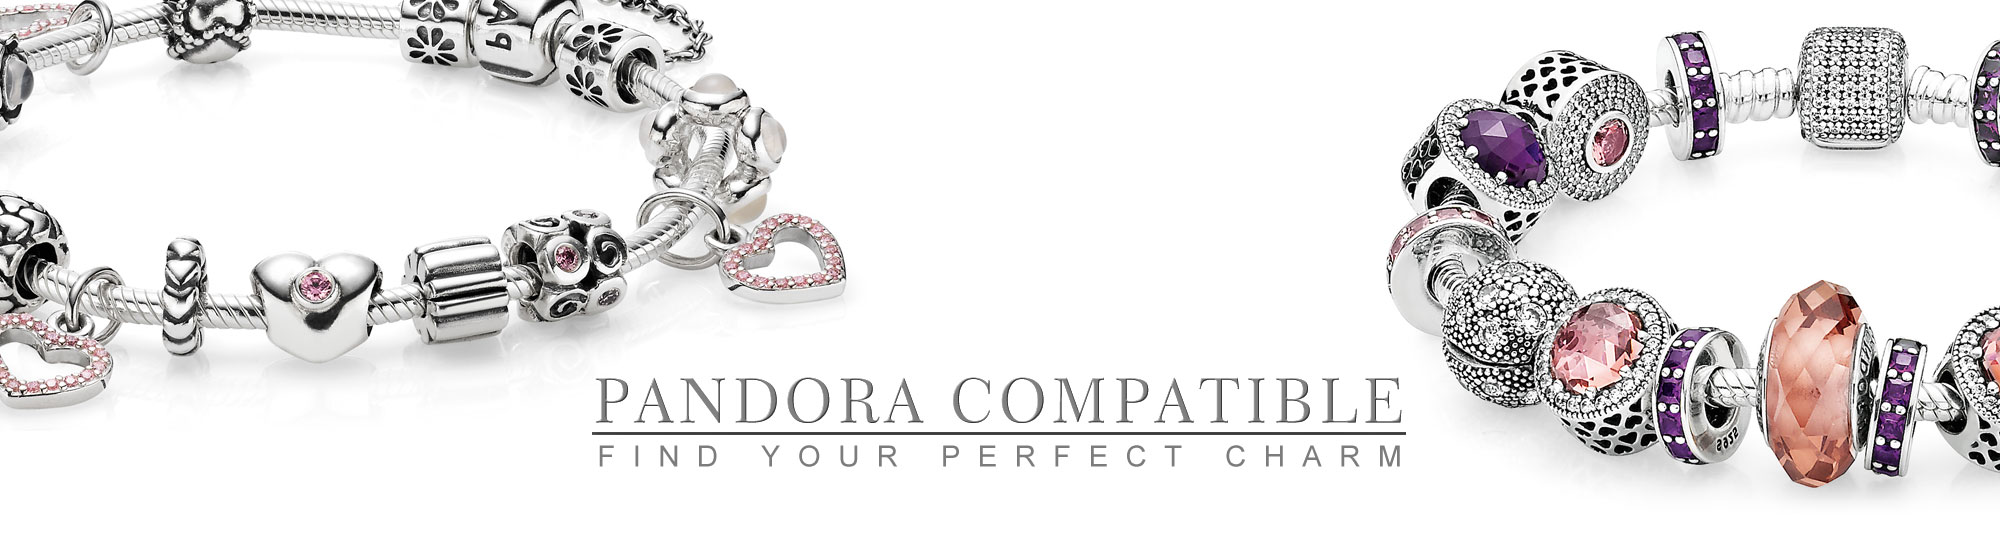 Pandora Bracelets beside the Pandora Compatible Logo